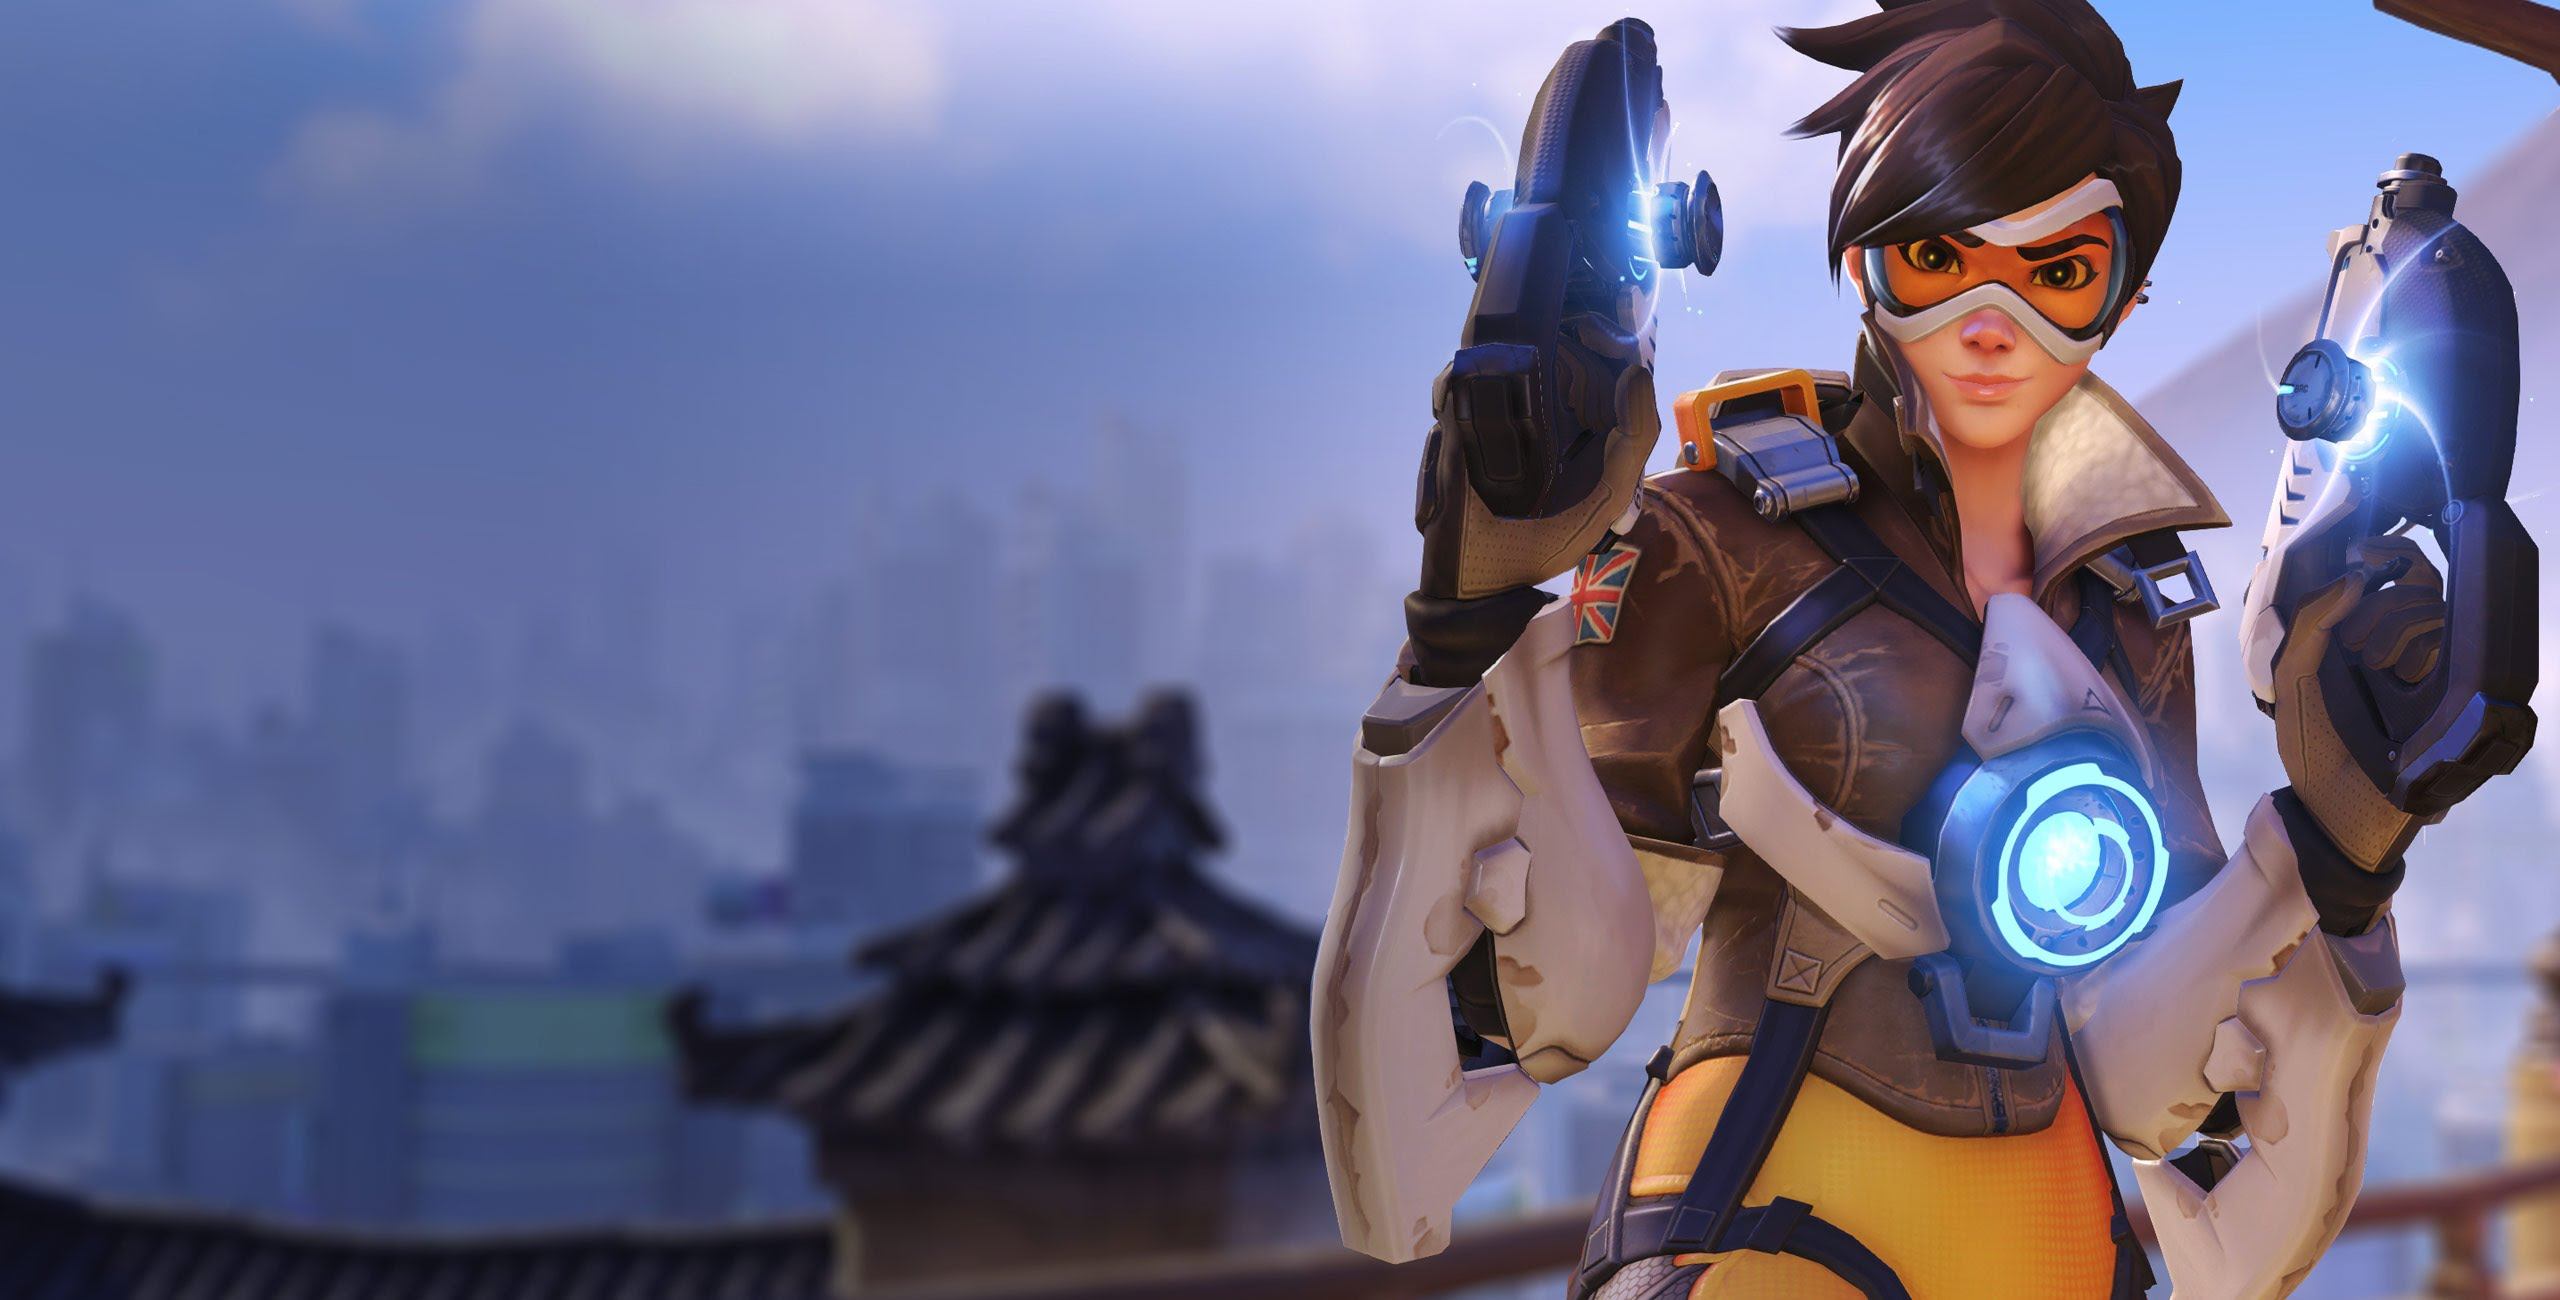 Overwatch : Tracer widescreen wallpapers